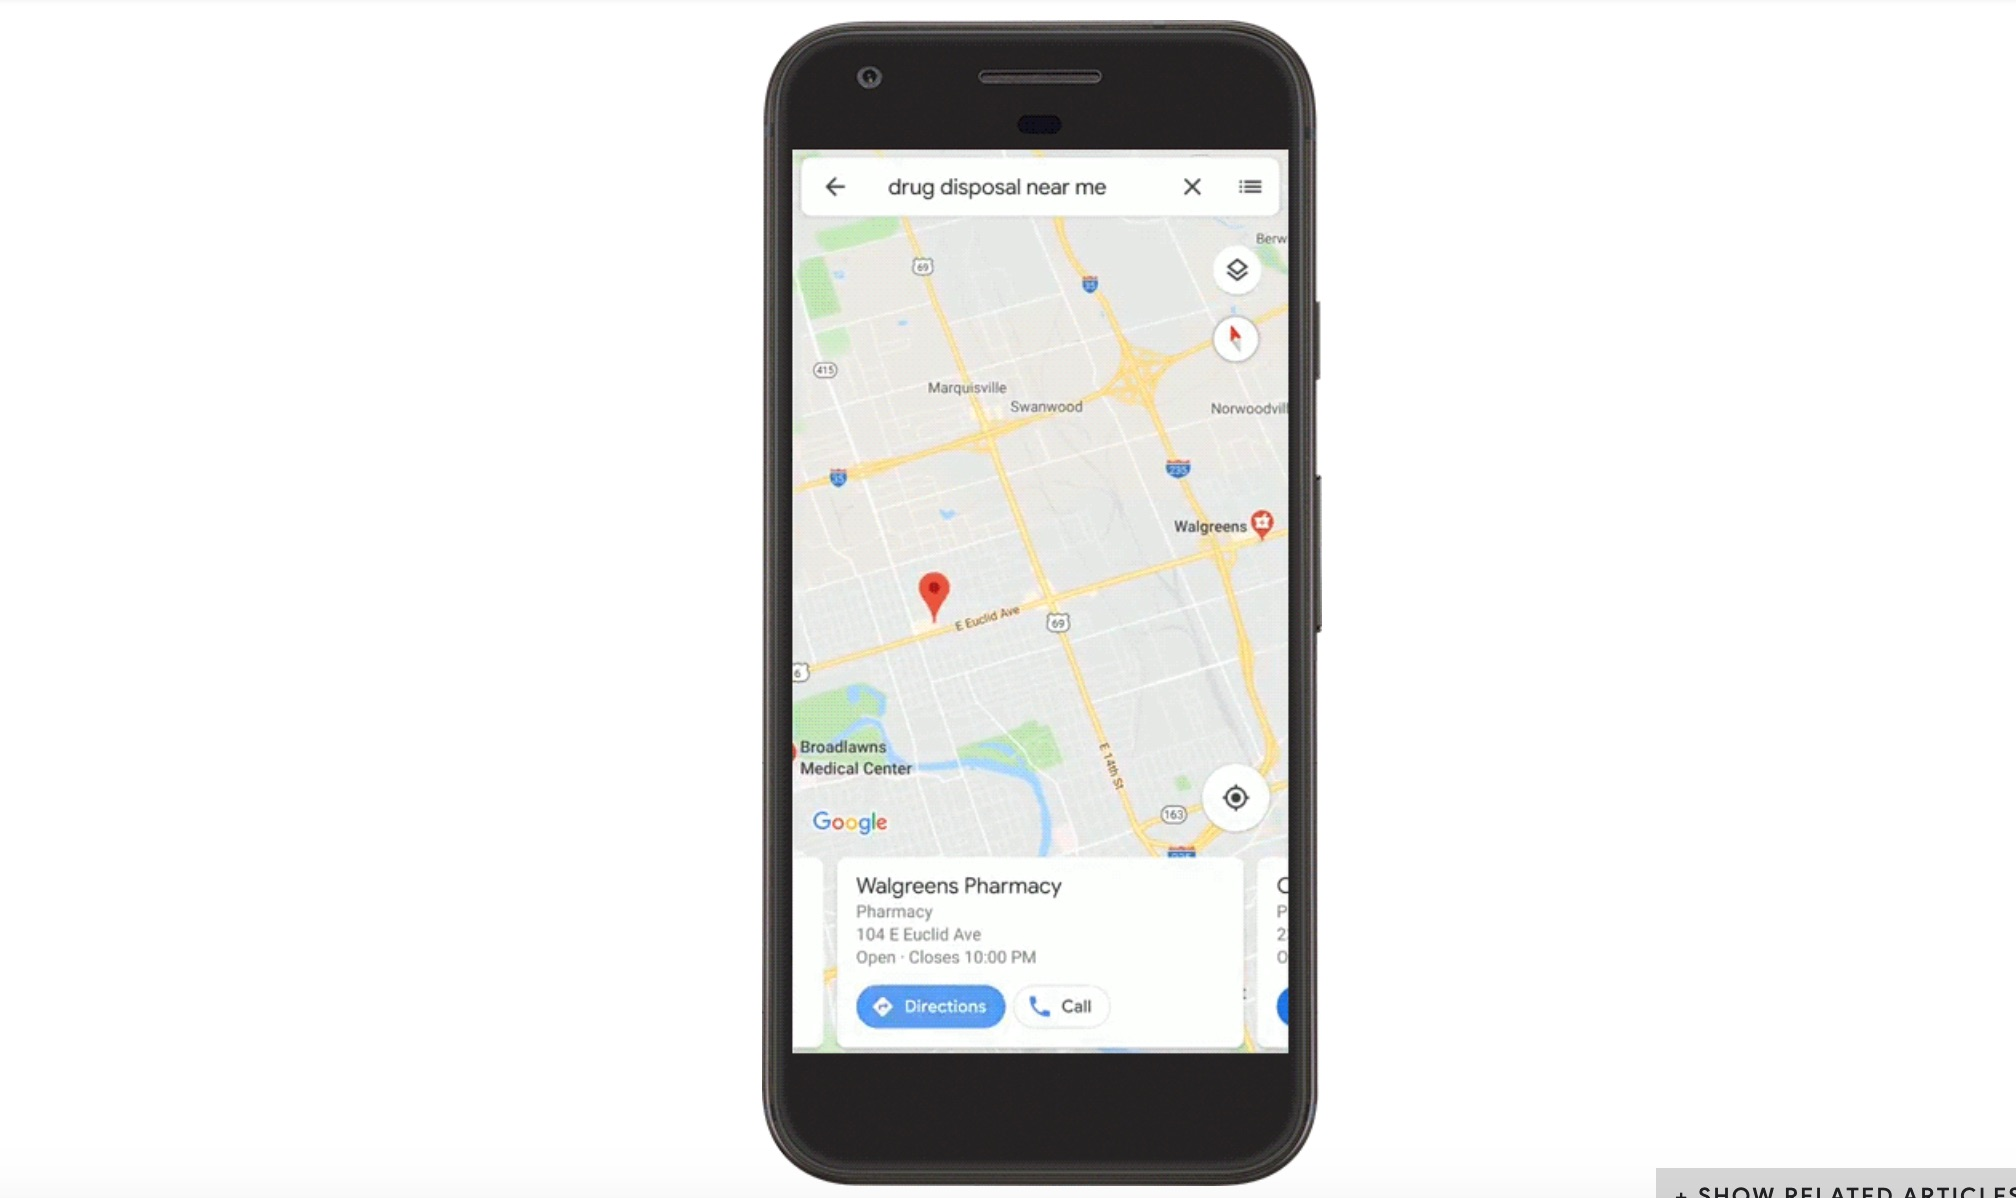 Google Maps Search Helps People Find Safe Ways To Dispose Of